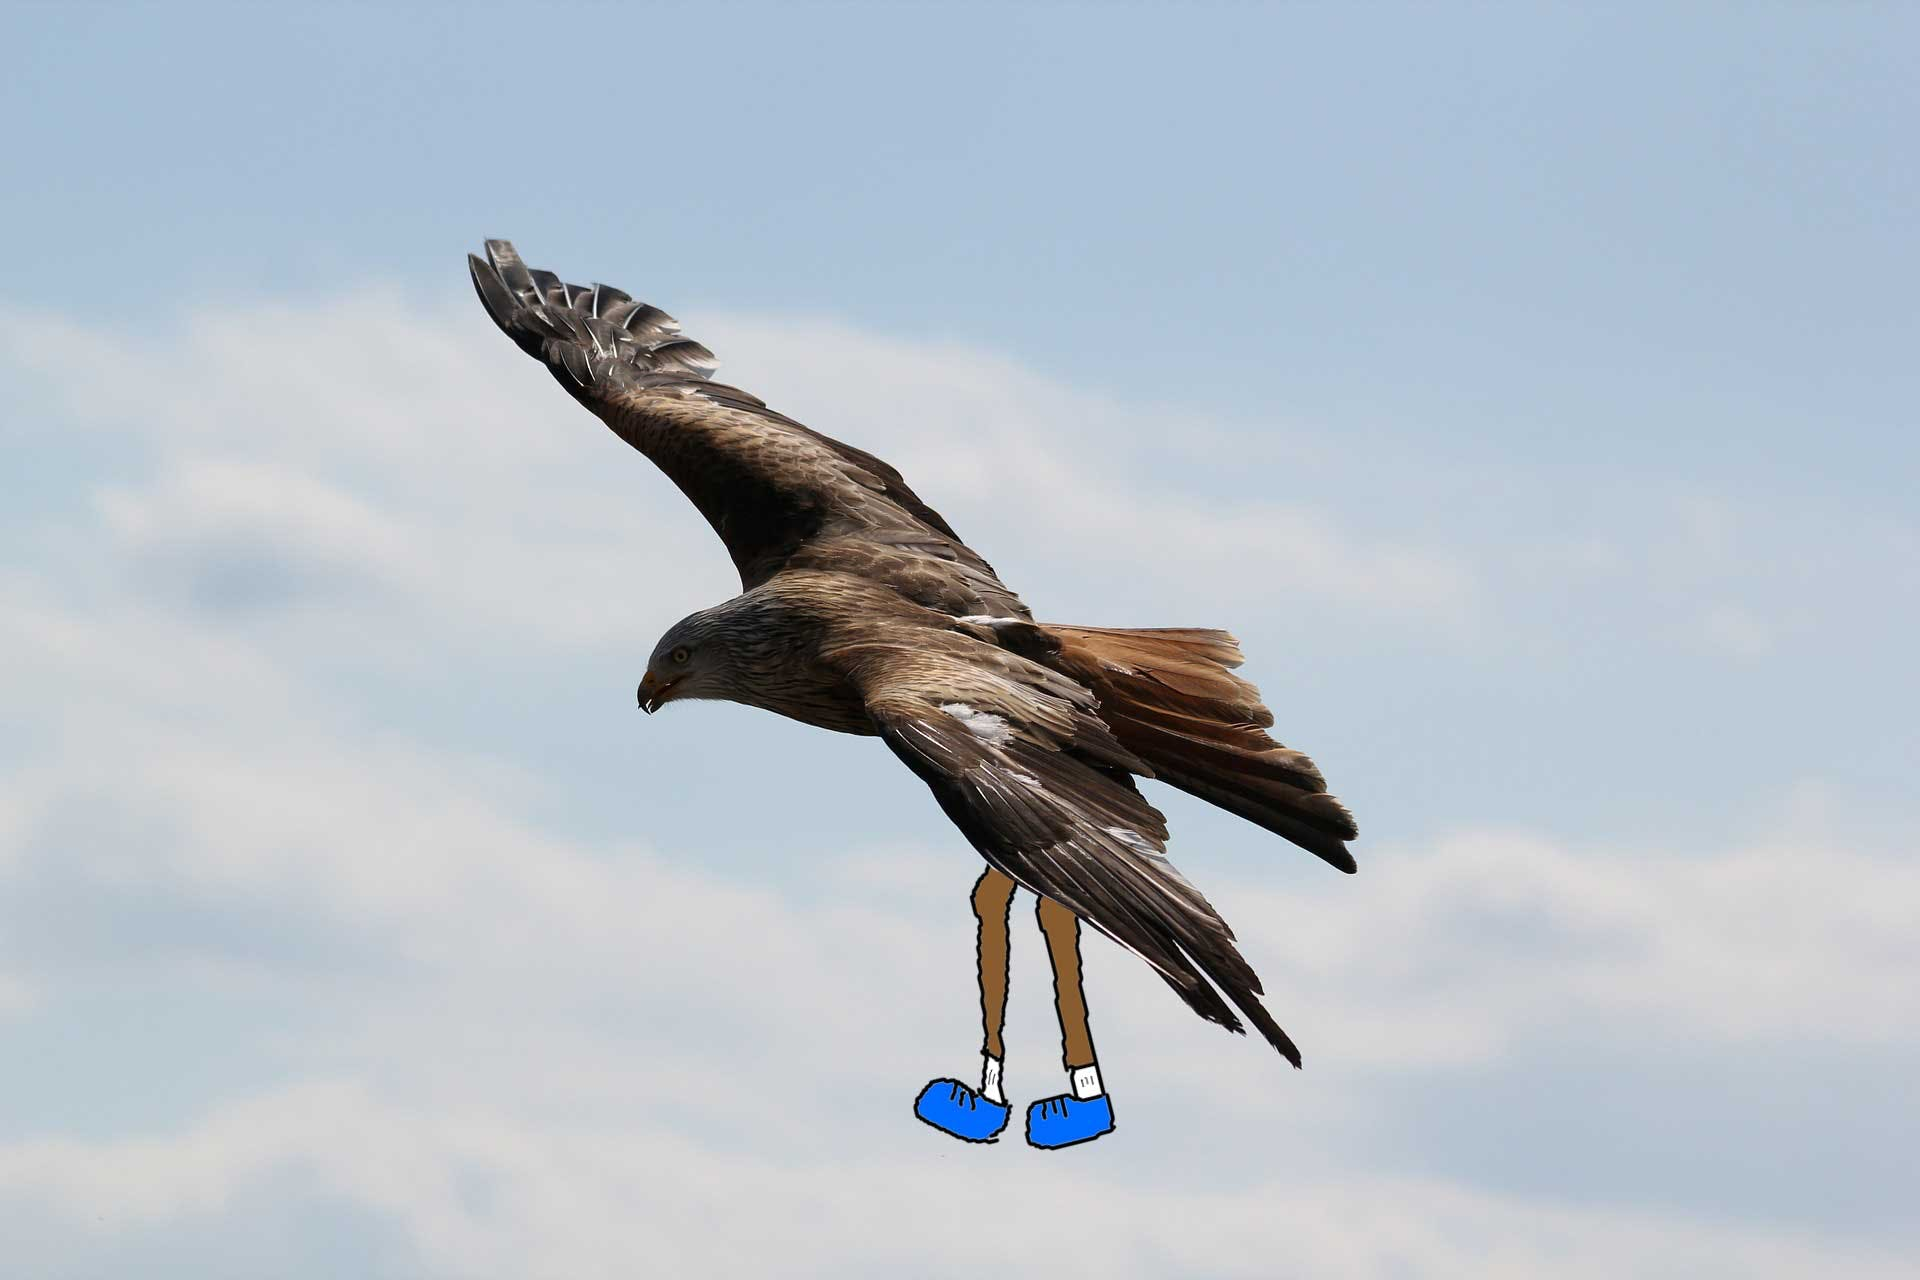 Eagle with human legs